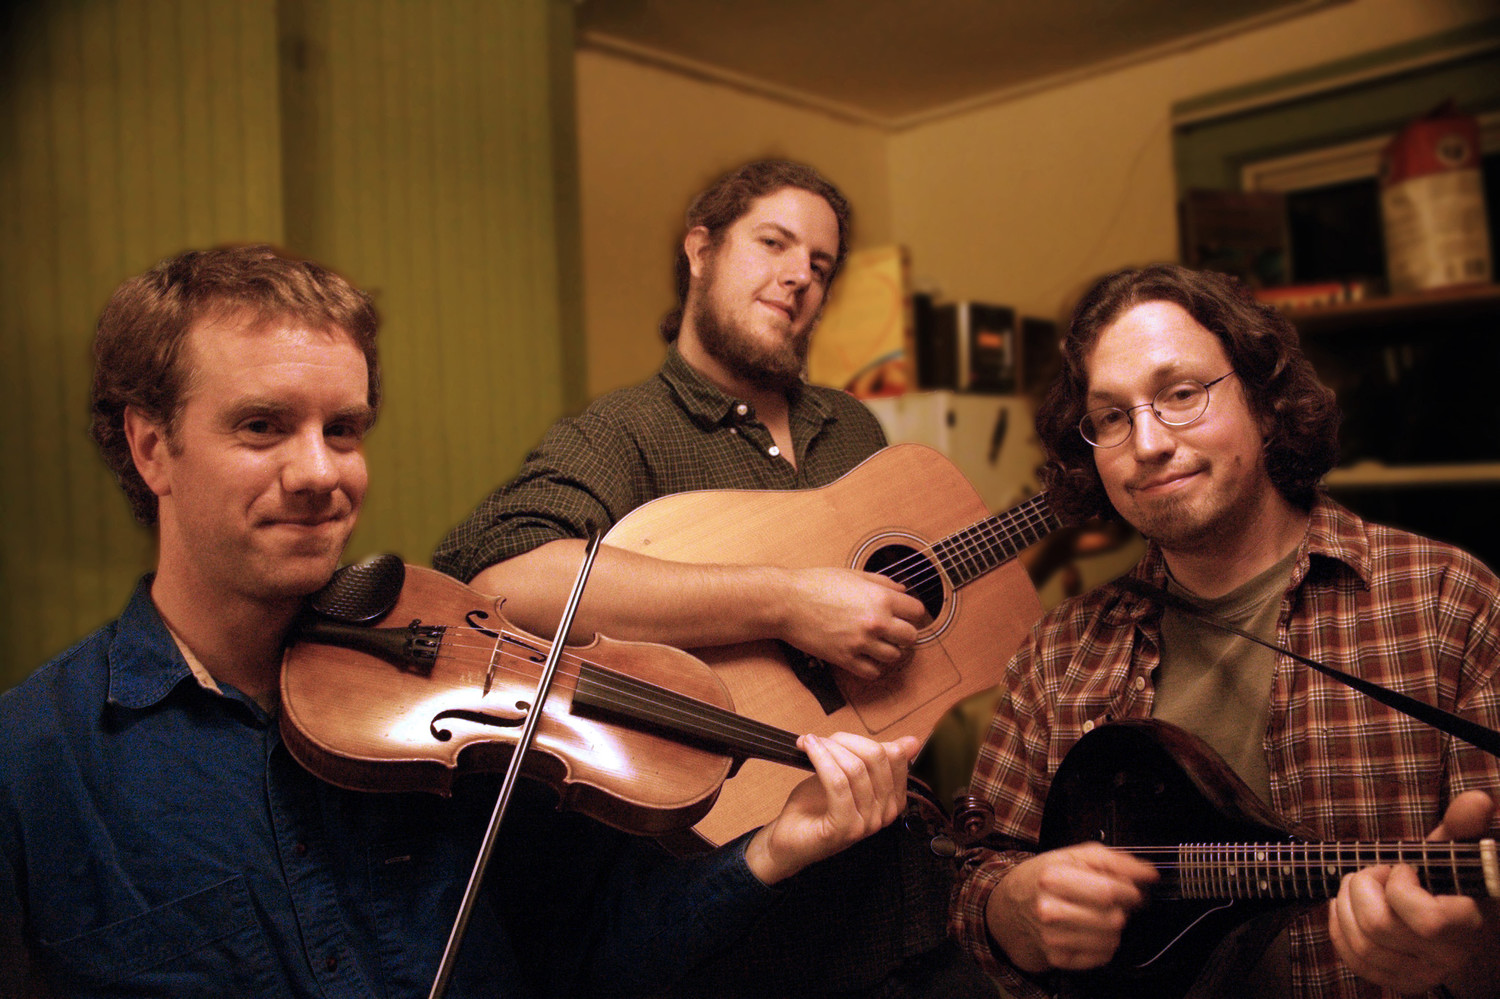 Riptide performs at the Rehoboth contra dance on Friday, February 9